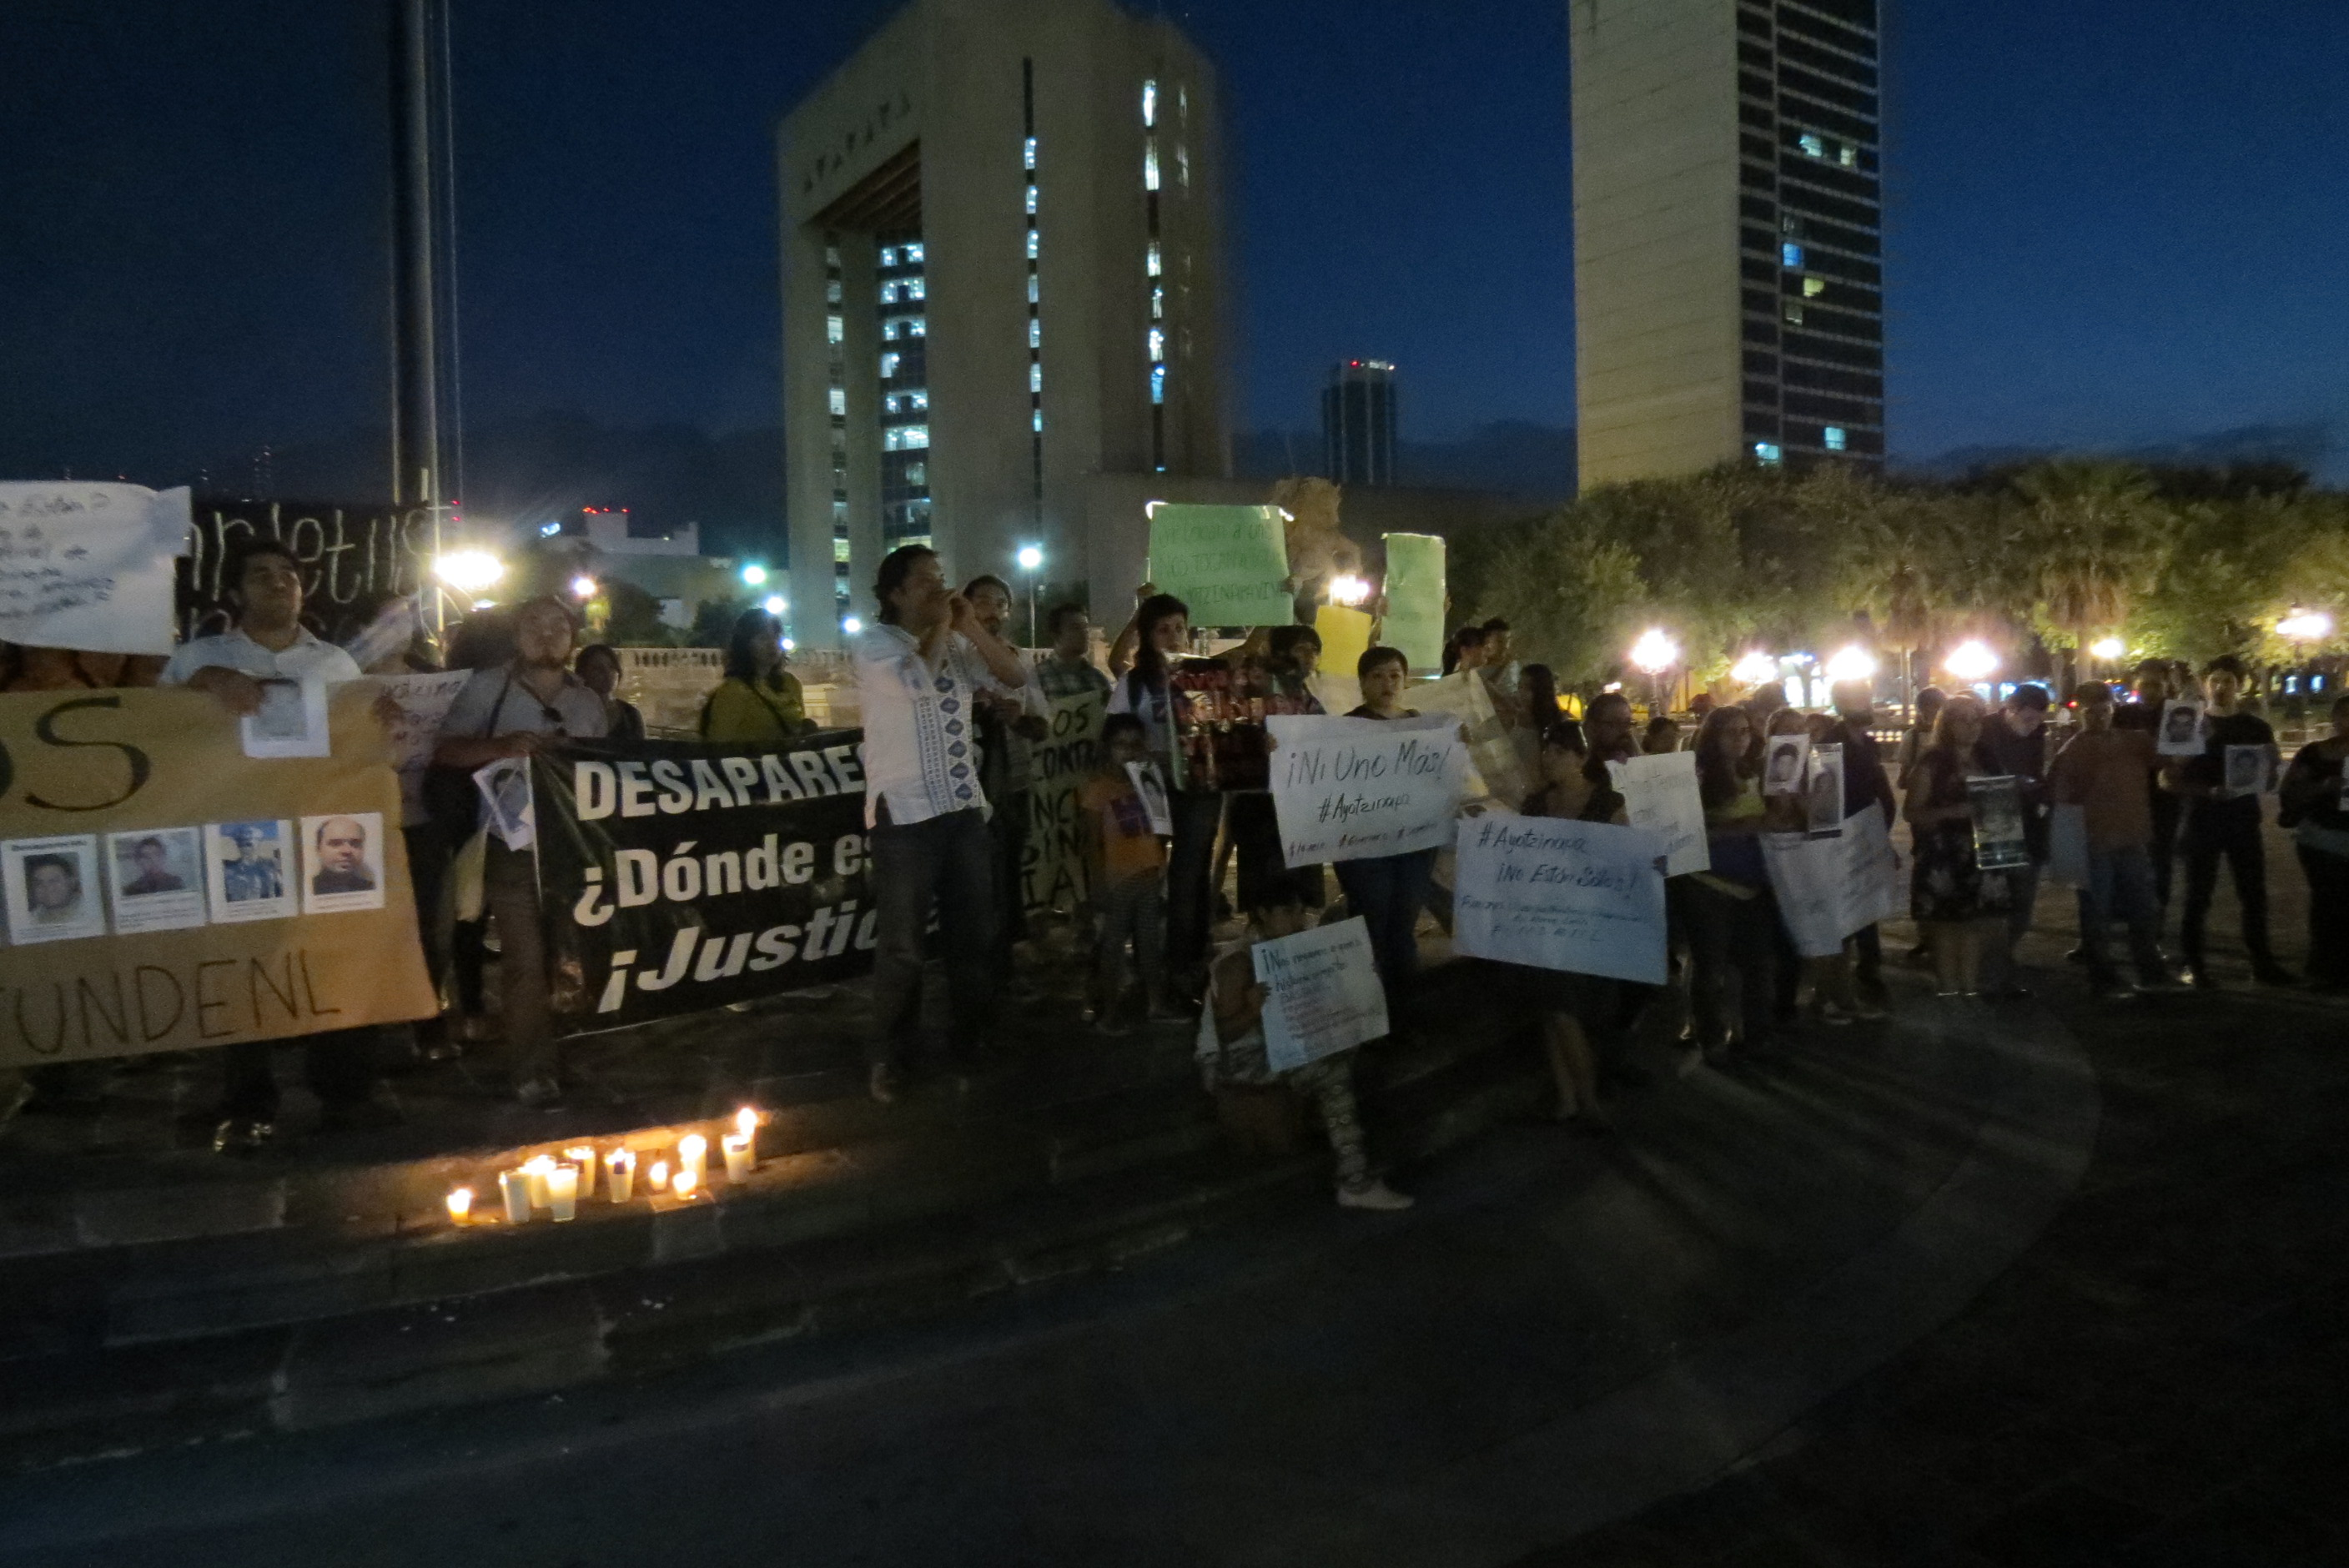 In October, Mexicans protest the disappearance of 43 aspiring teachers. By Realidad Expuesta.